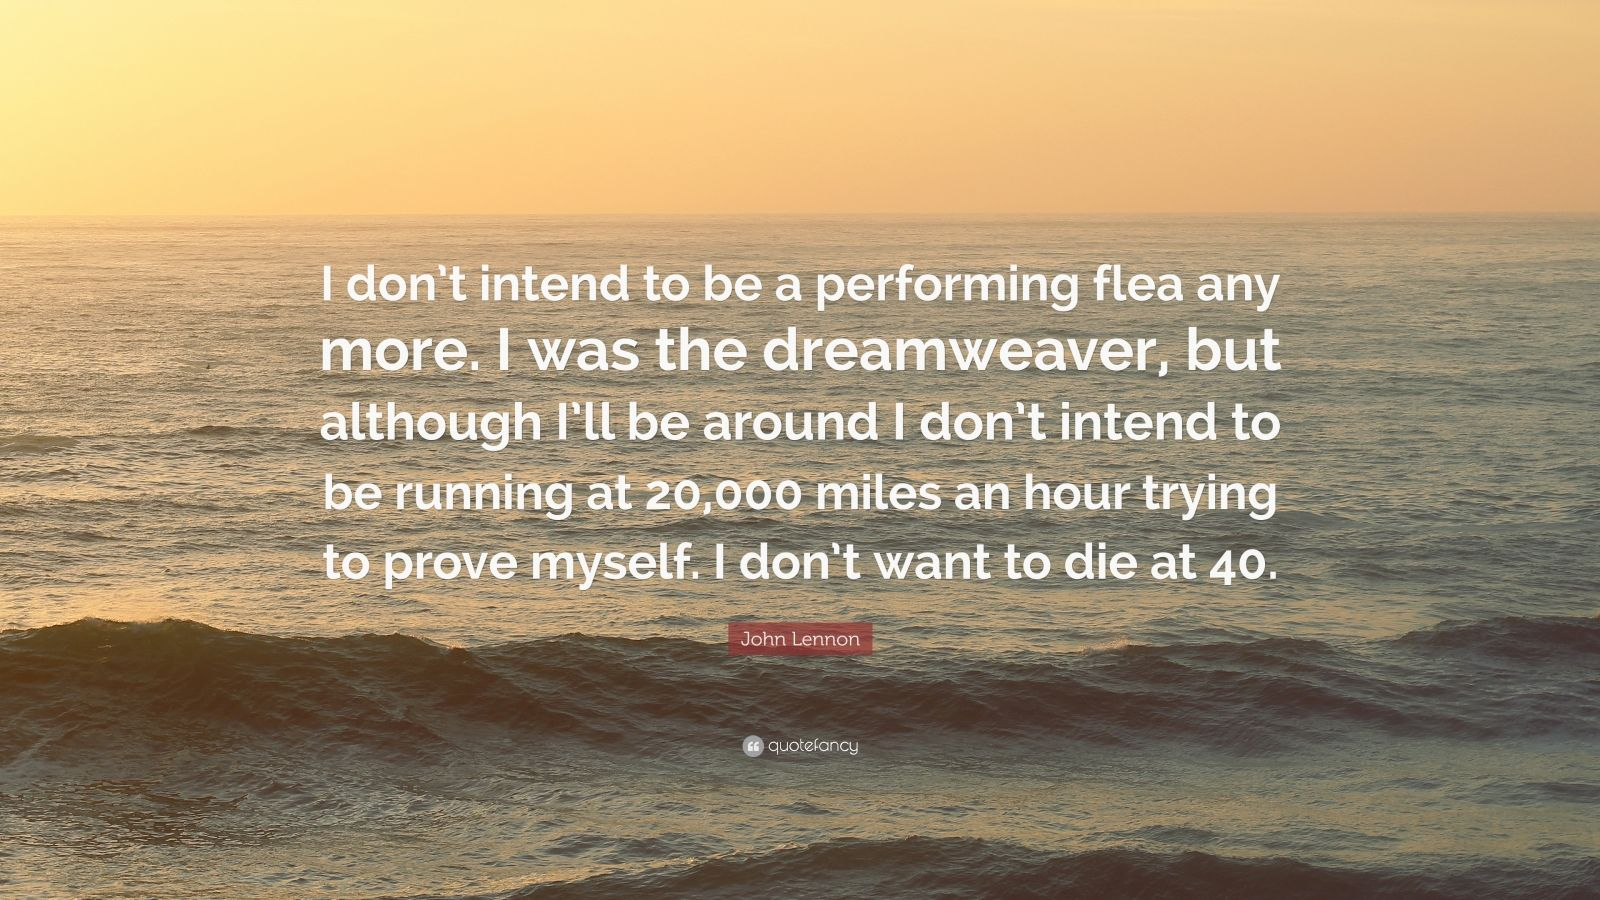 """John Lennon Quote: """"I don't intend to be a performing flea any more. I was the dreamweaver, but although I'll be around I don't intend to be running at 20,000 miles an hour trying to prove myself. I don't want to die at 40."""""""